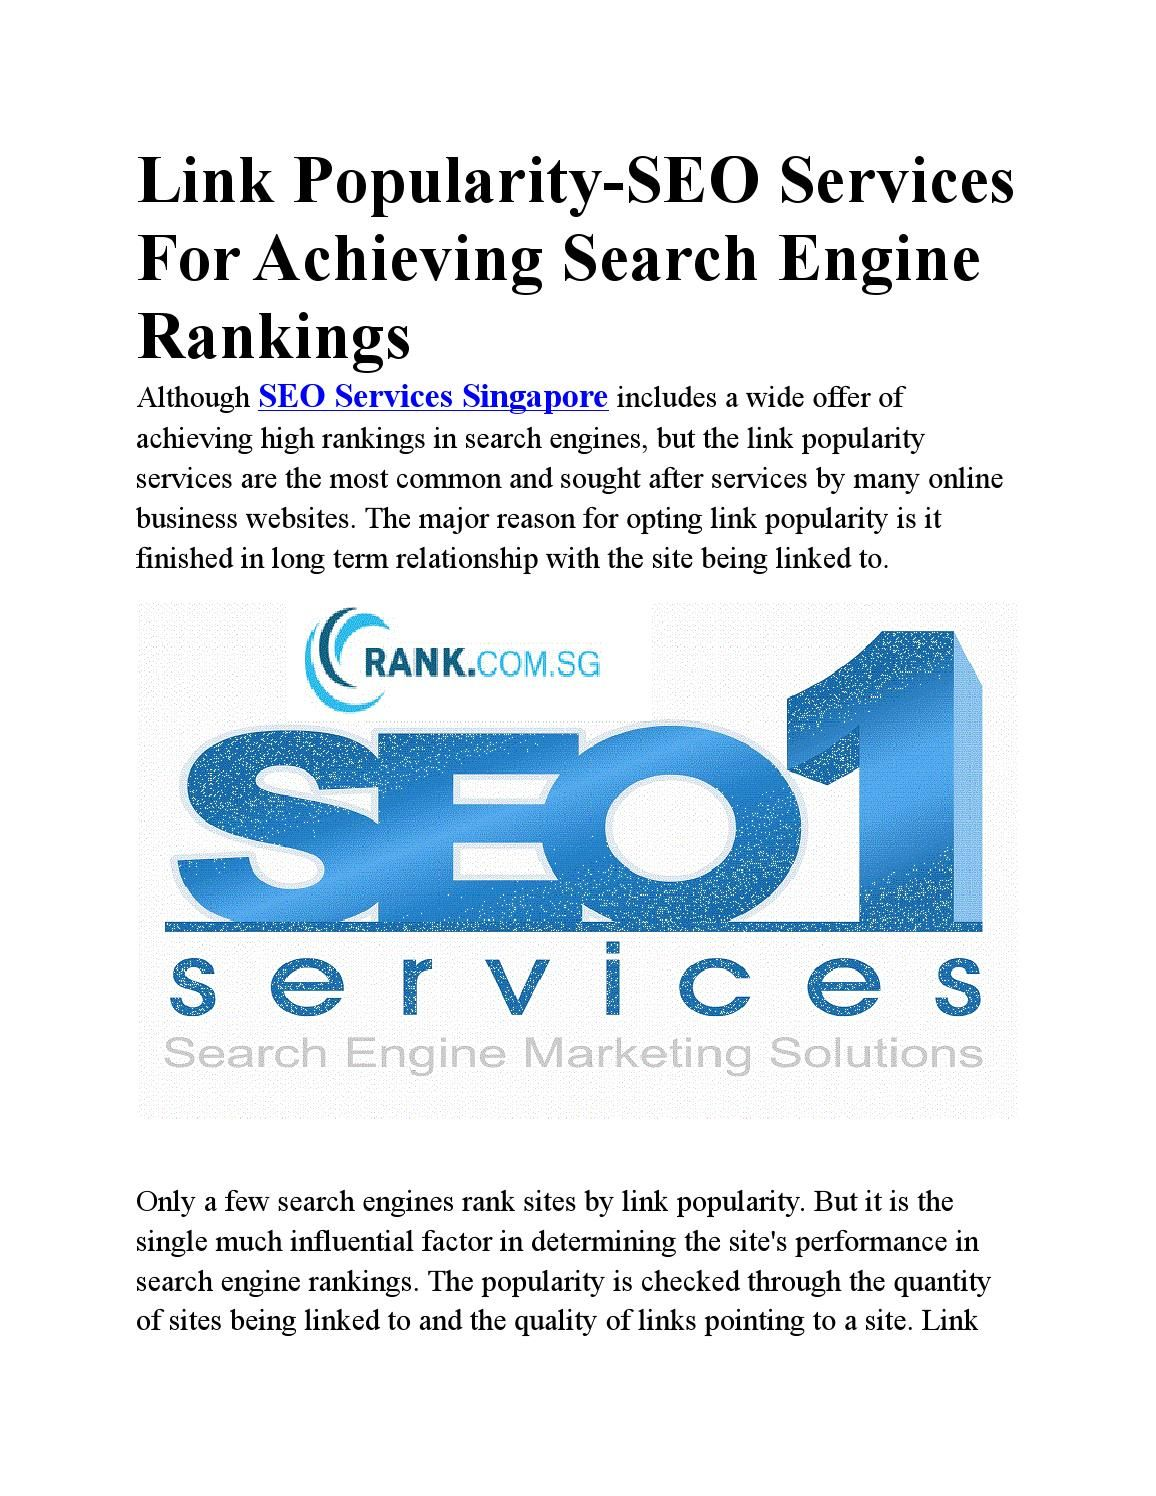 Link Popularity Seo Services For Achieving Search Engine Rankings